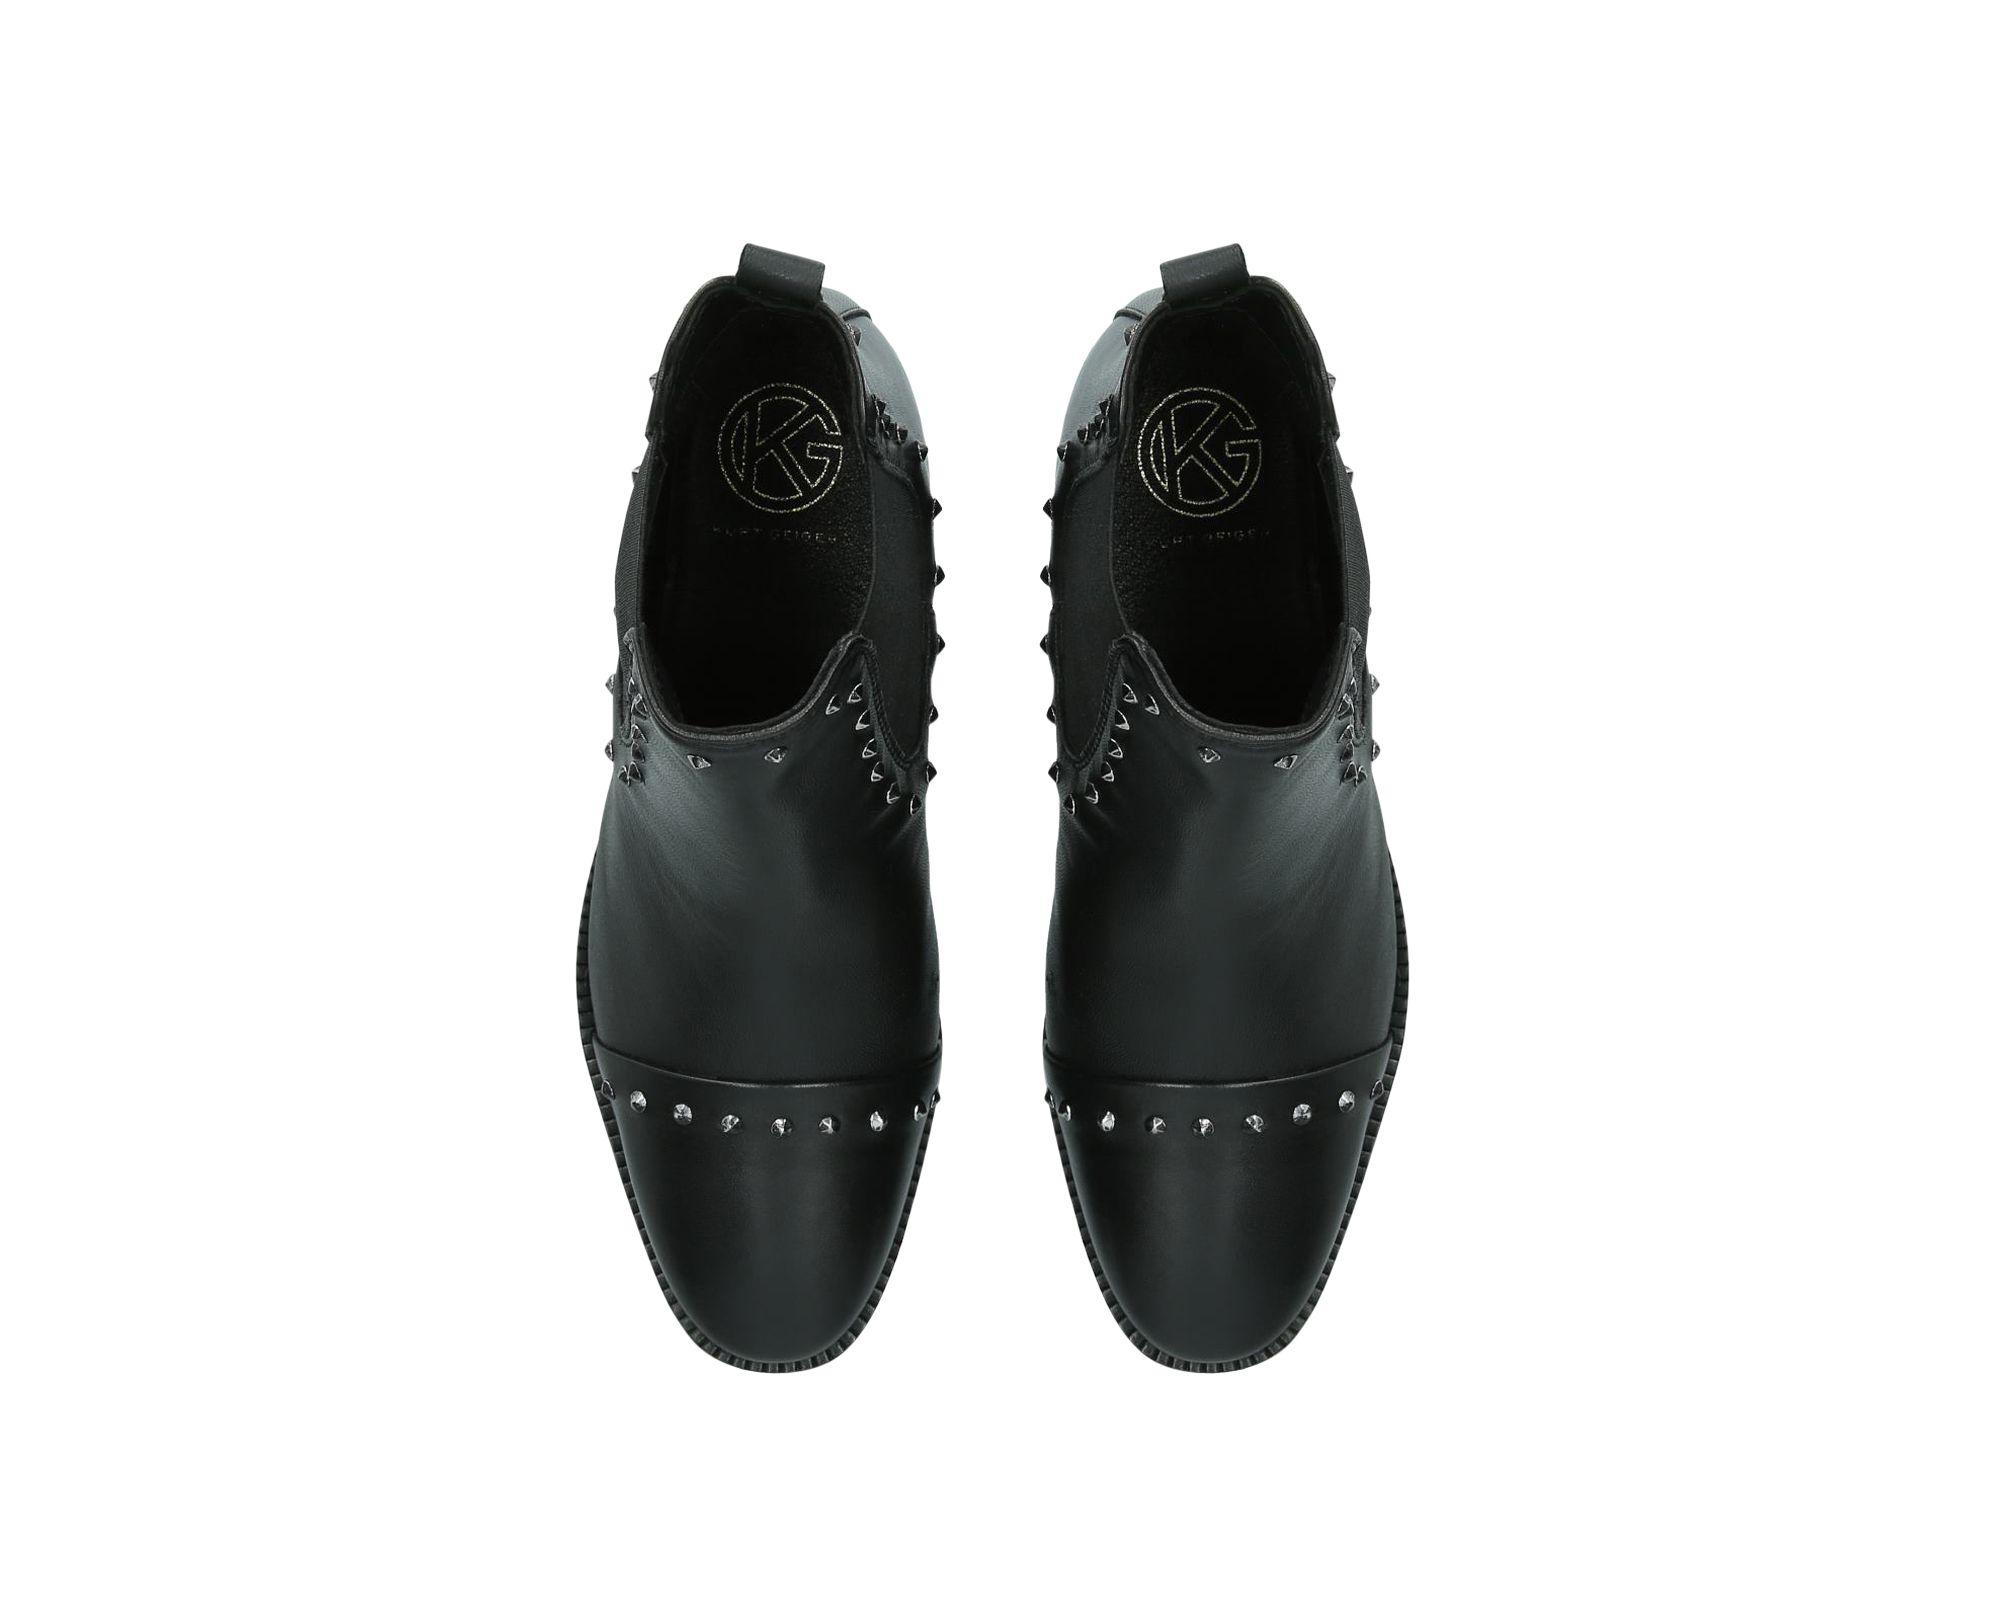 d997f2b2acdb KG by Kurt Geiger Black 'tony' Studded Leather Ankle Boots in Black ...